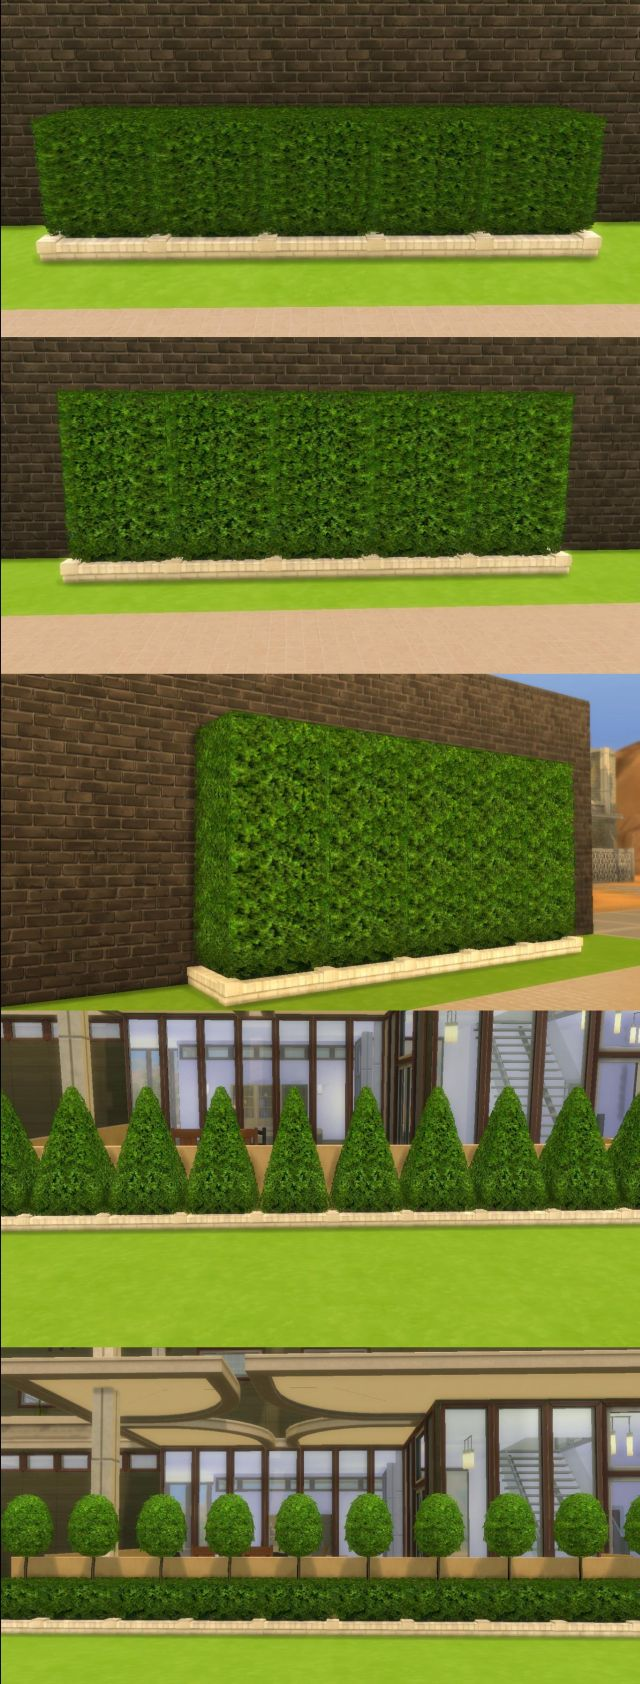 The Sims 2 Hedges by AdonisPluto